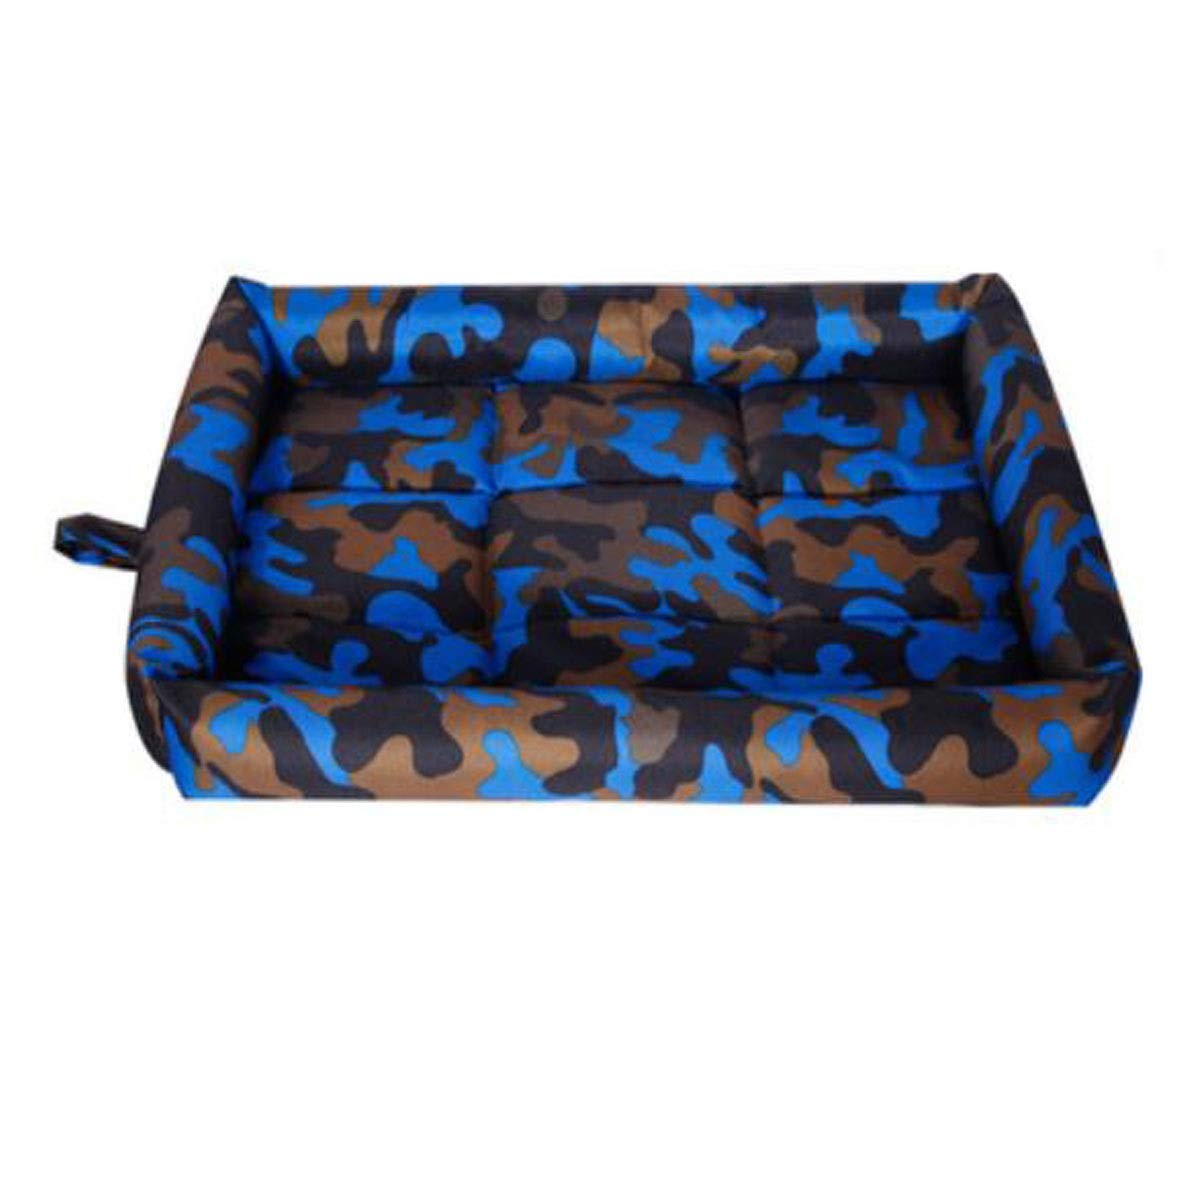 Camouflage bluee XL Dog Bed, Spring Large and Medium Dog Orthopedic Sleeping Bed, Can Be Placed On The Floor Car Dog Cage, Camouflage bluee, Camouflage orange, Camouflage Red XXL (color   Camouflage bluee, Size   XL)